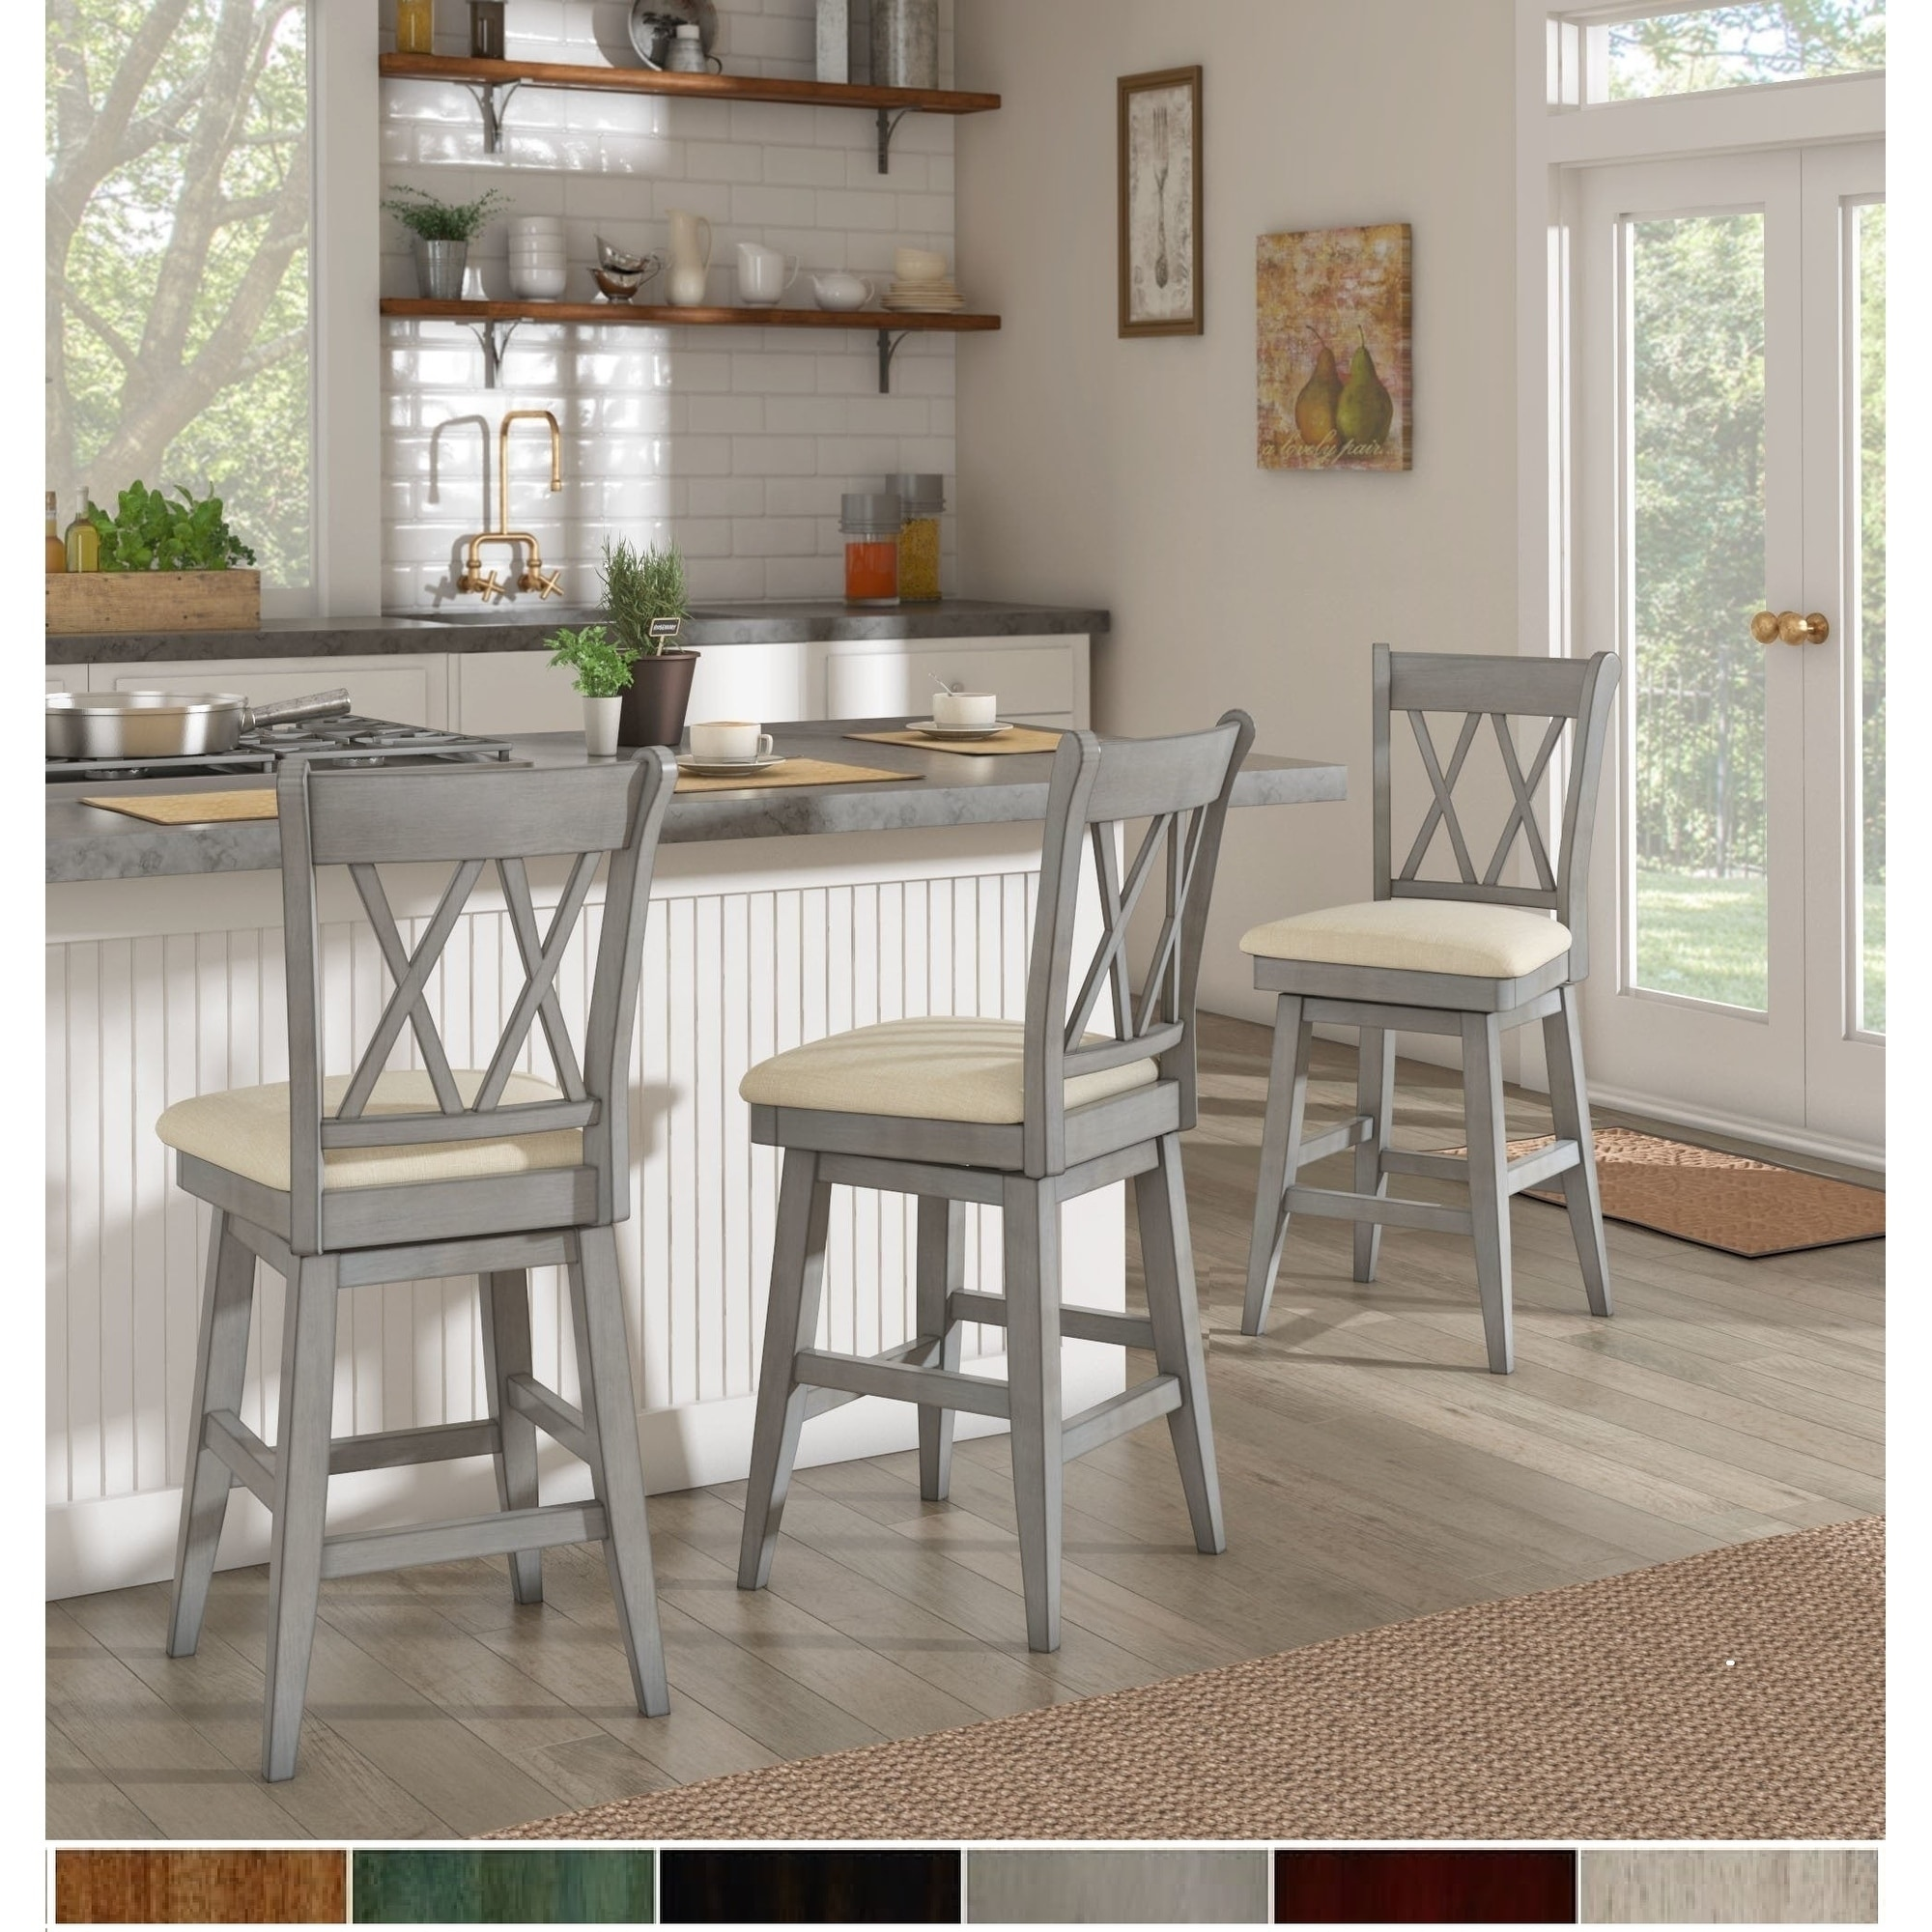 Fabulous Buy White Kitchen Dining Room Chairs Online At Overstock Onthecornerstone Fun Painted Chair Ideas Images Onthecornerstoneorg